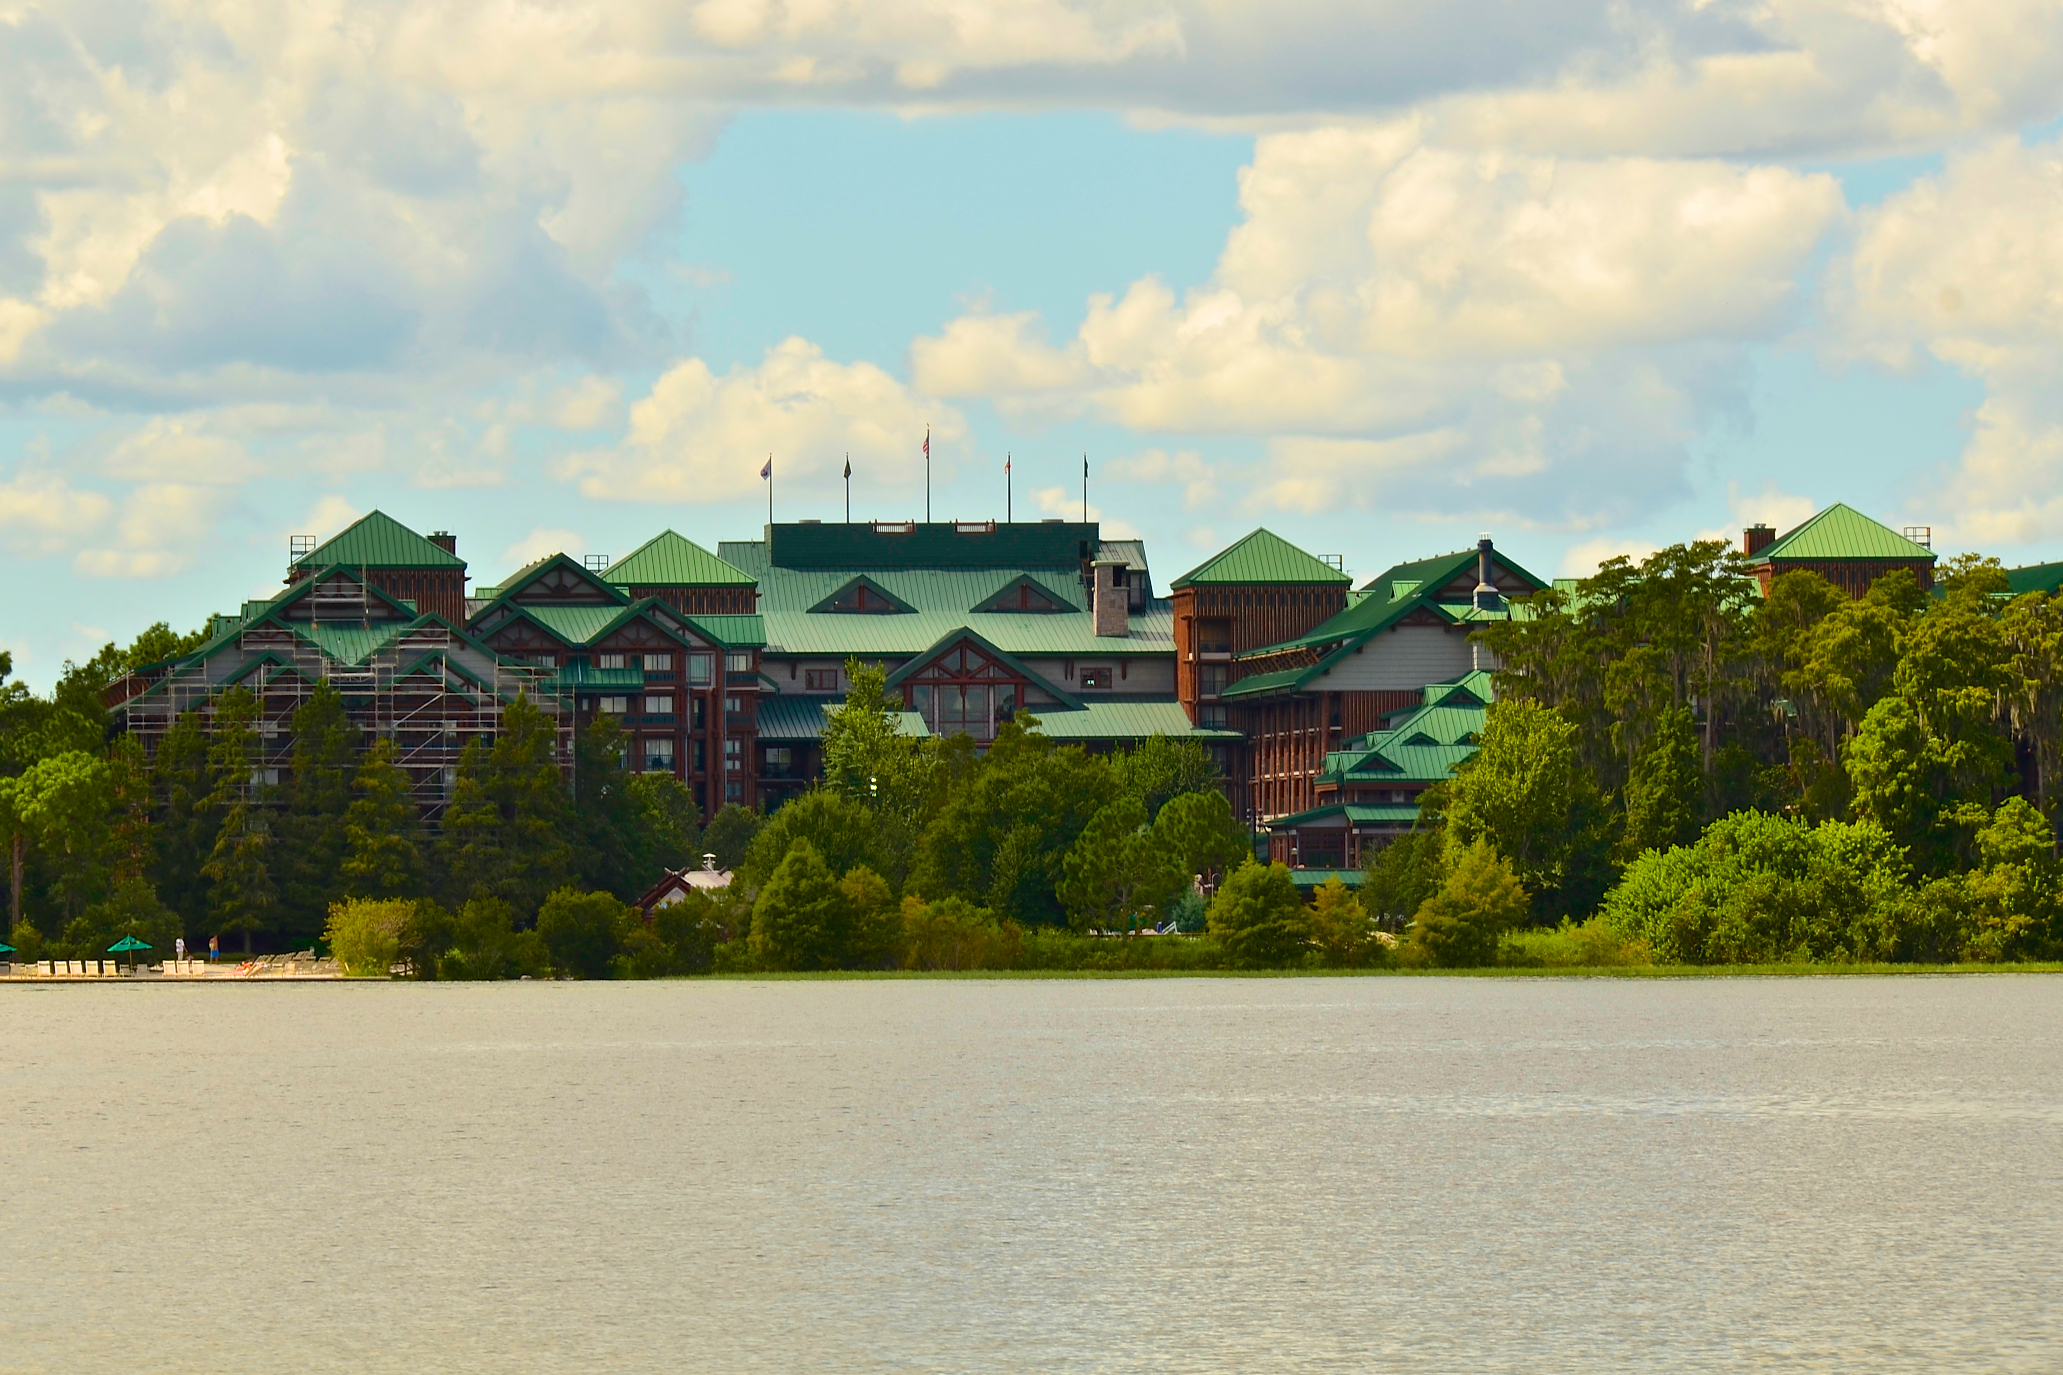 Wilderness Lodge from the water